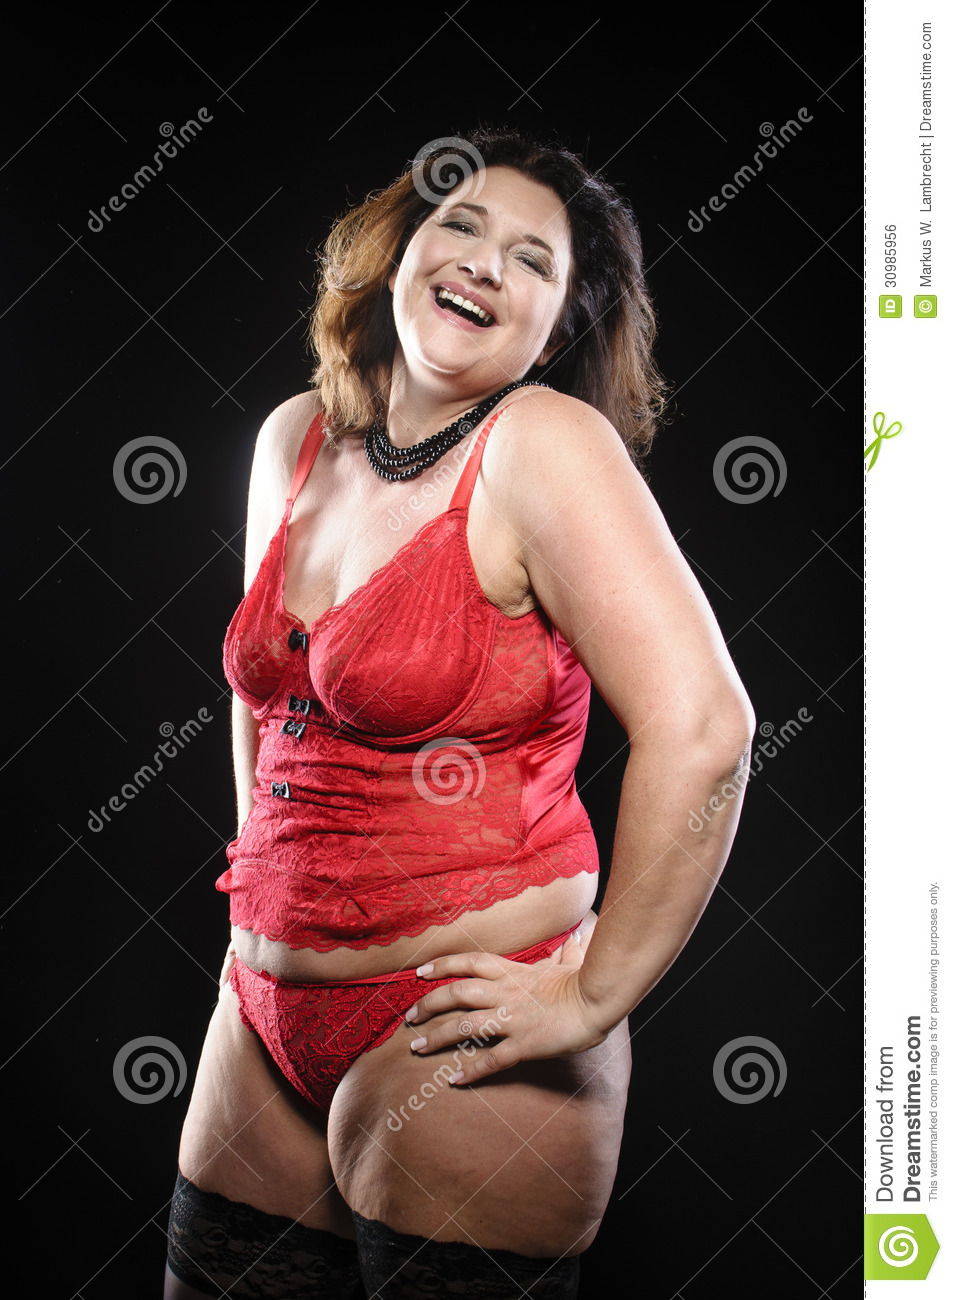 1f2a212b0e8 Attractive adult plus size model wearing red lingerie against black  background and laughs.